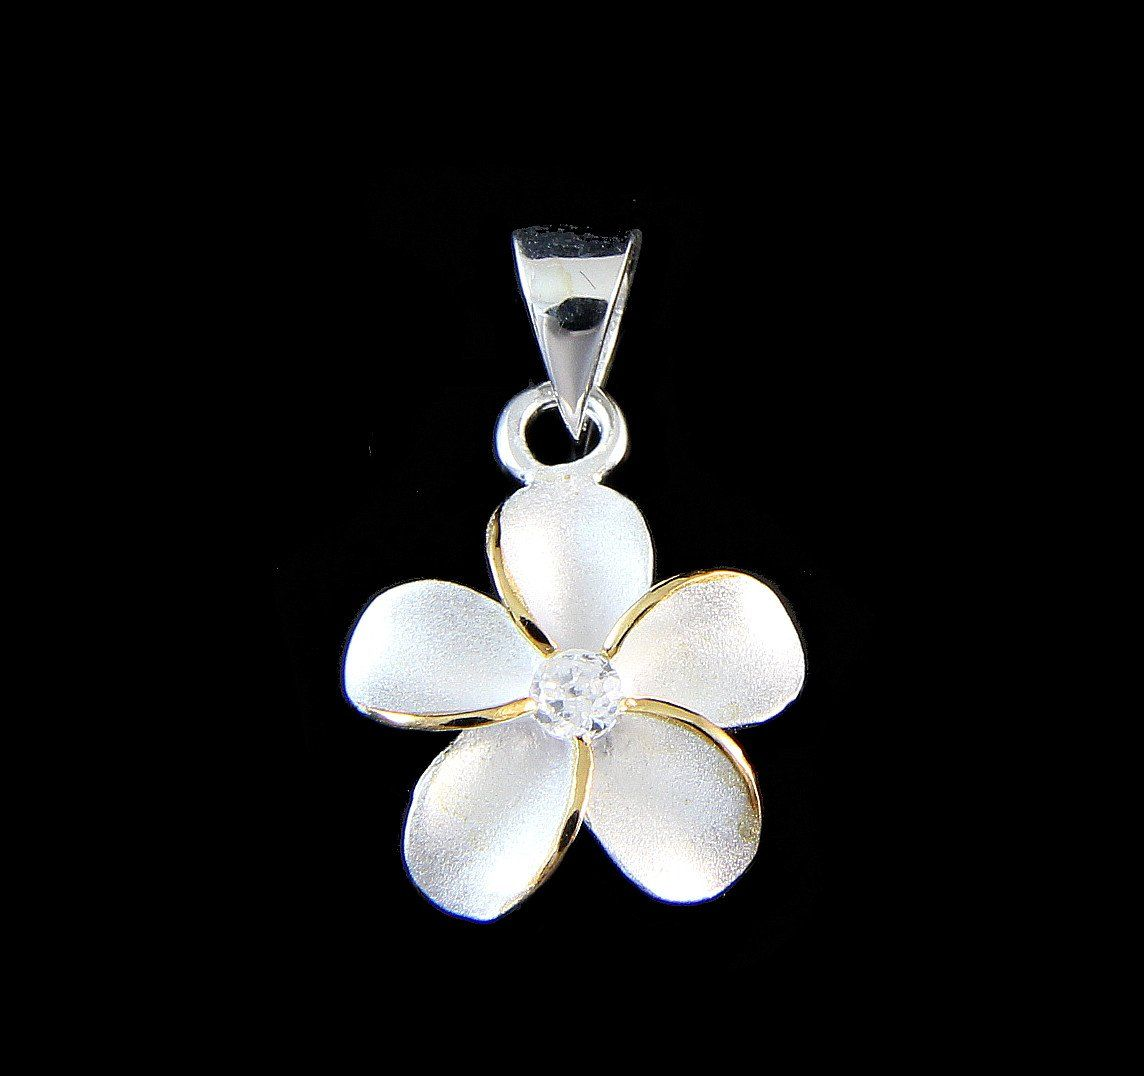 29mm Silver Yellow Plated Cross Charm